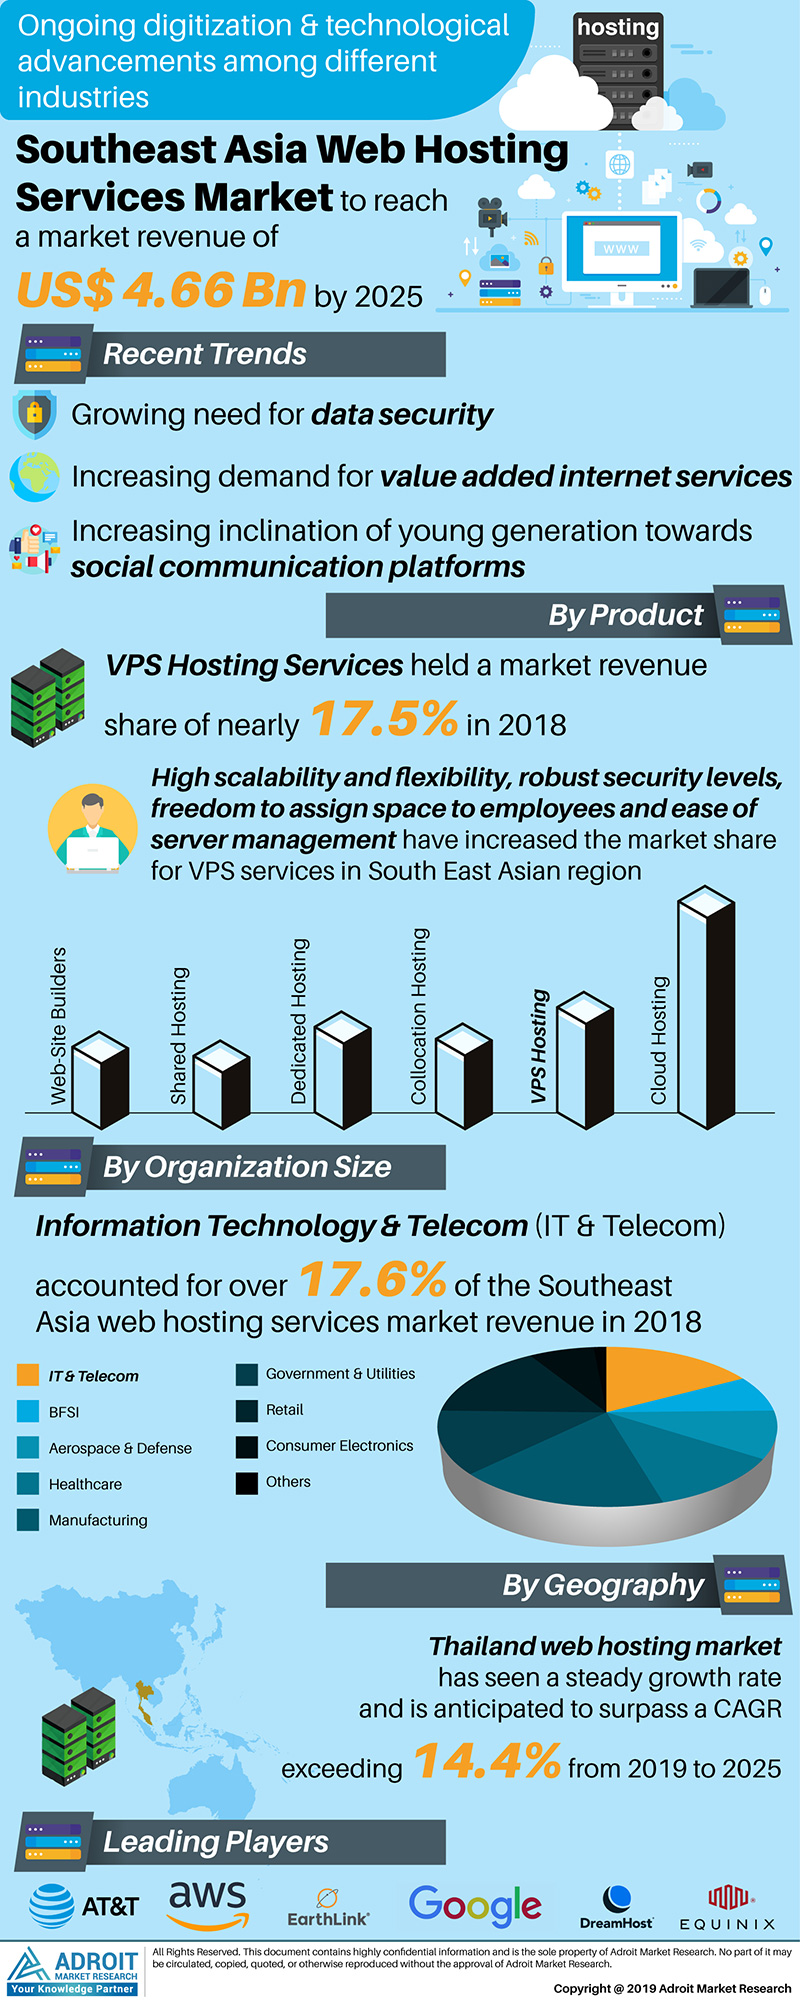 Southeast Asia Web Hosting Services Market Size 2017 By Product, Application, Organization Size, Region and Forecast 2018 to 2025